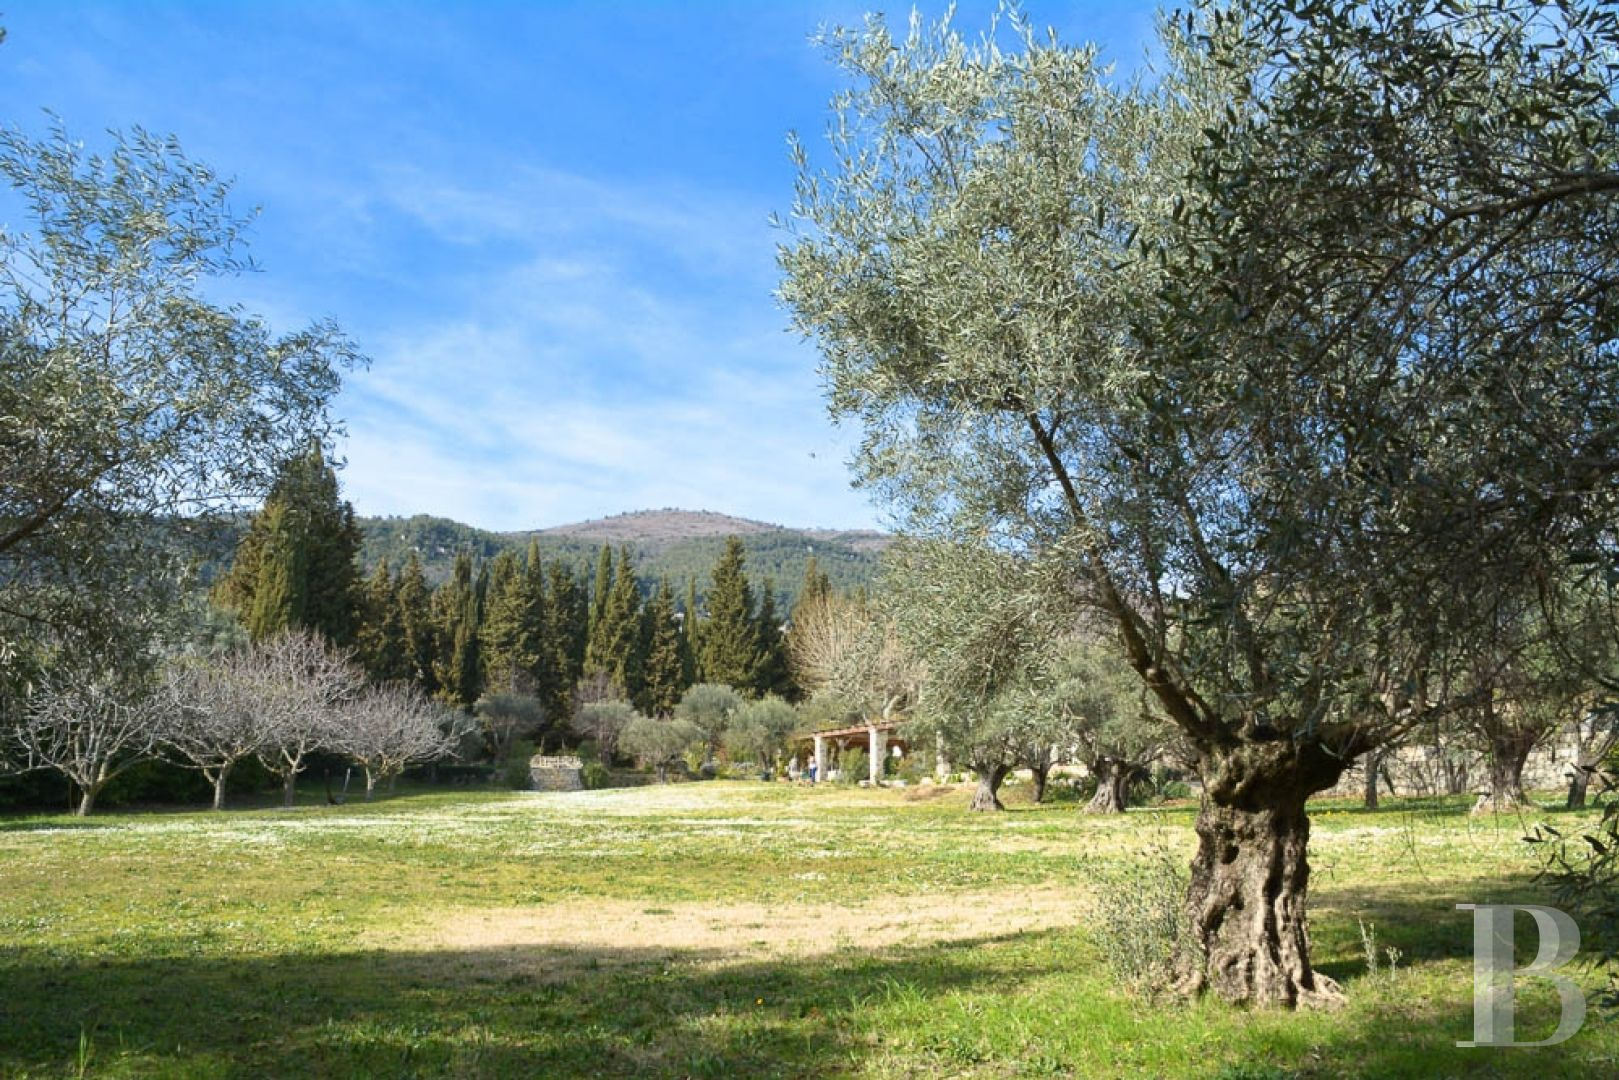 property for sale France provence cote dazur residences traditional - 12 zoom